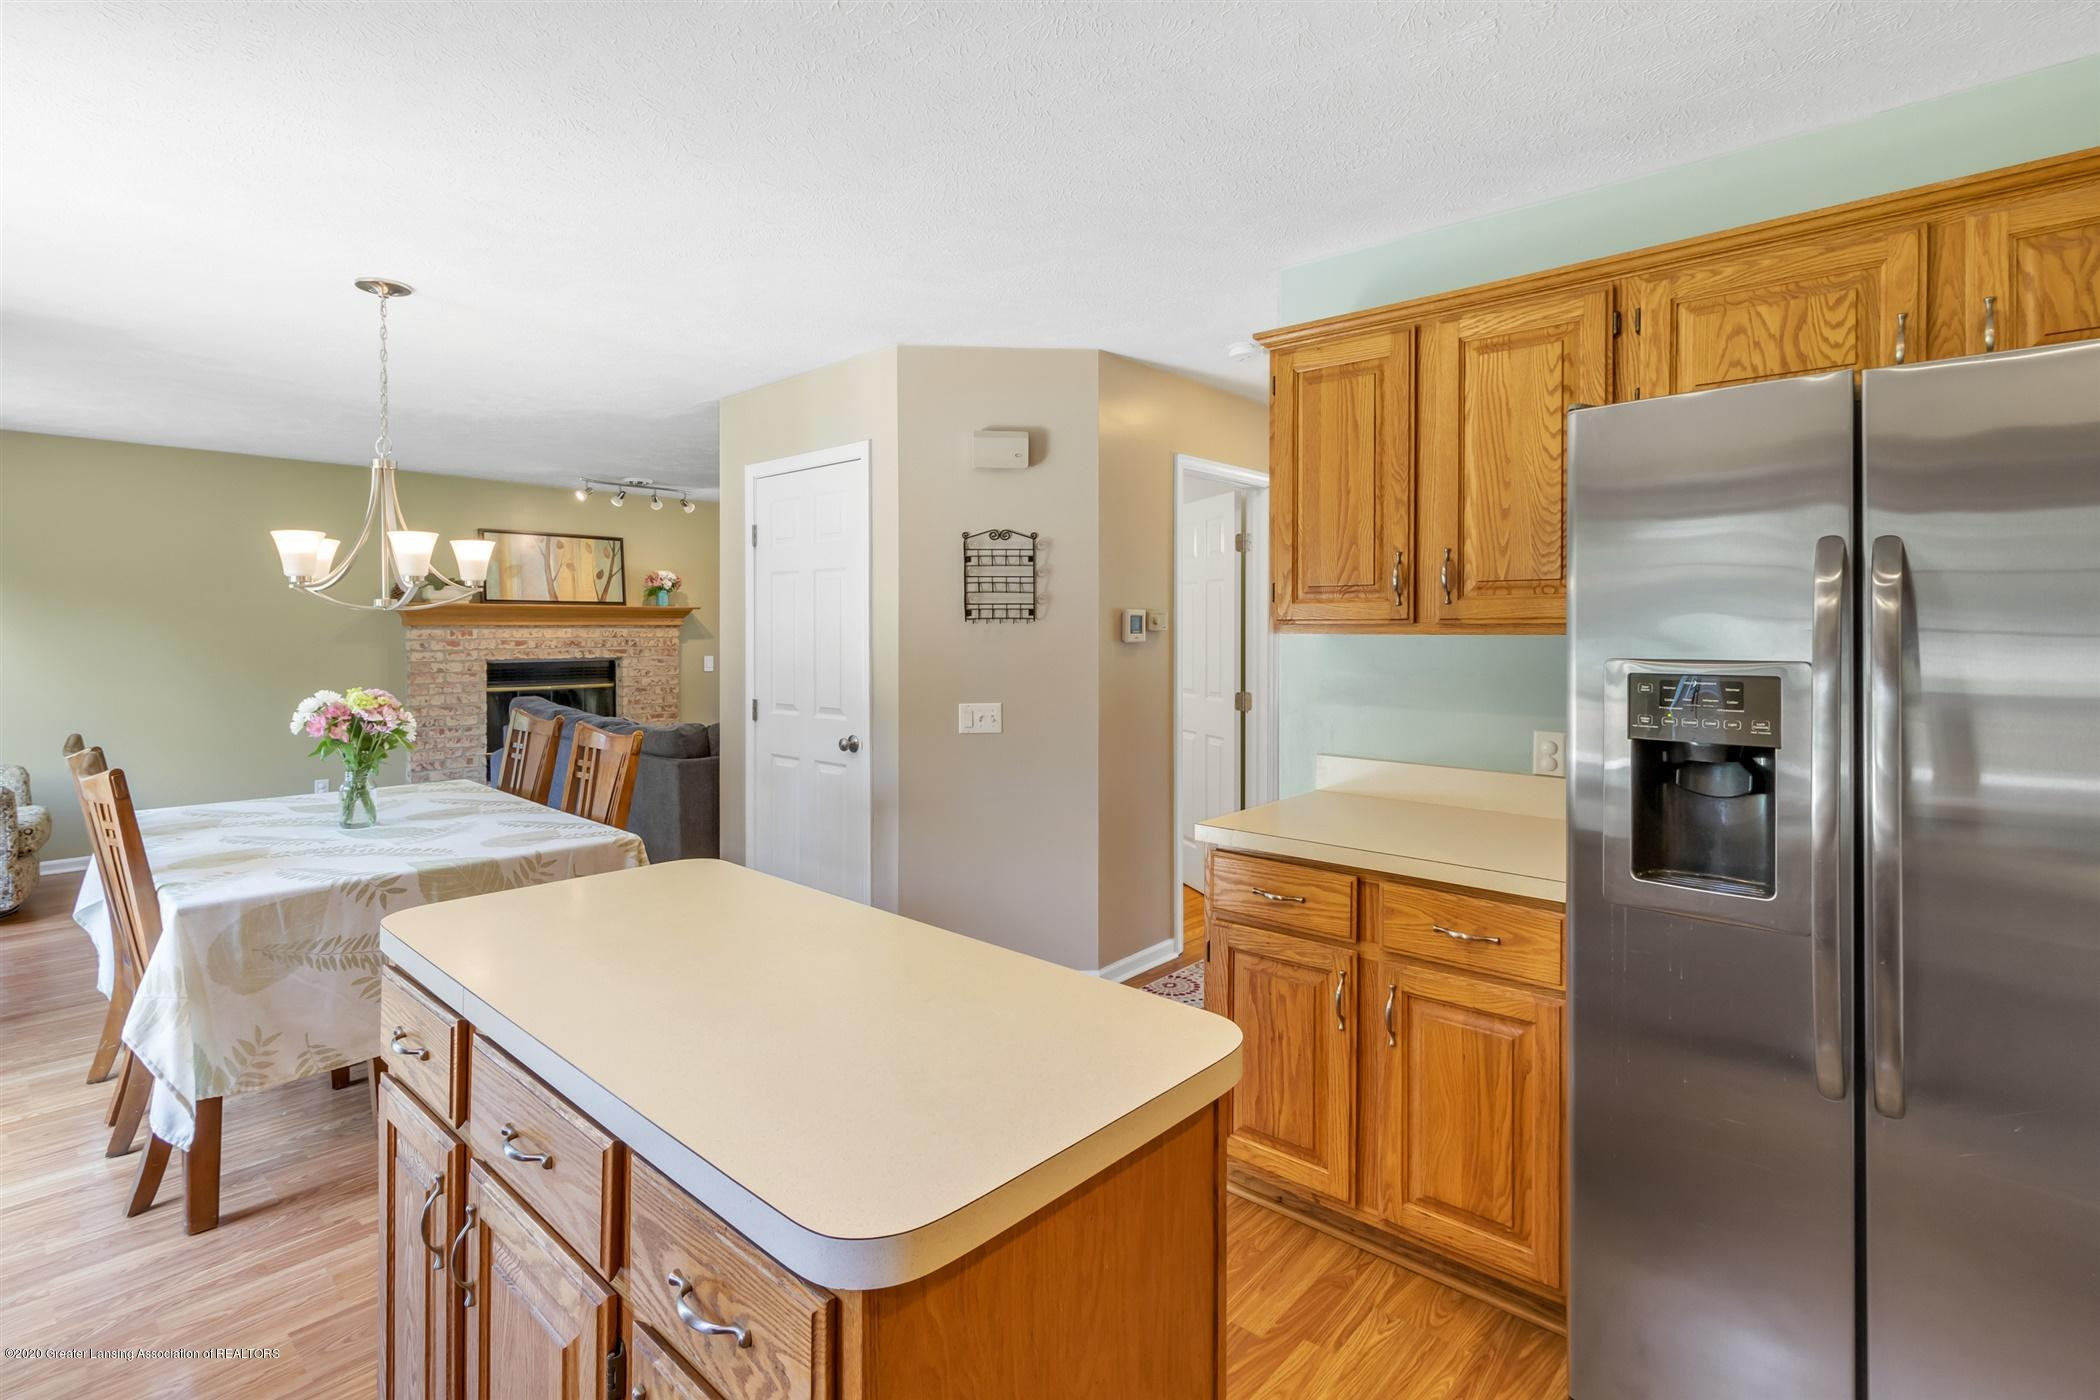 2945 Whistlewood Way - 18-2945Whistlewood-WindowStill-Real - 18